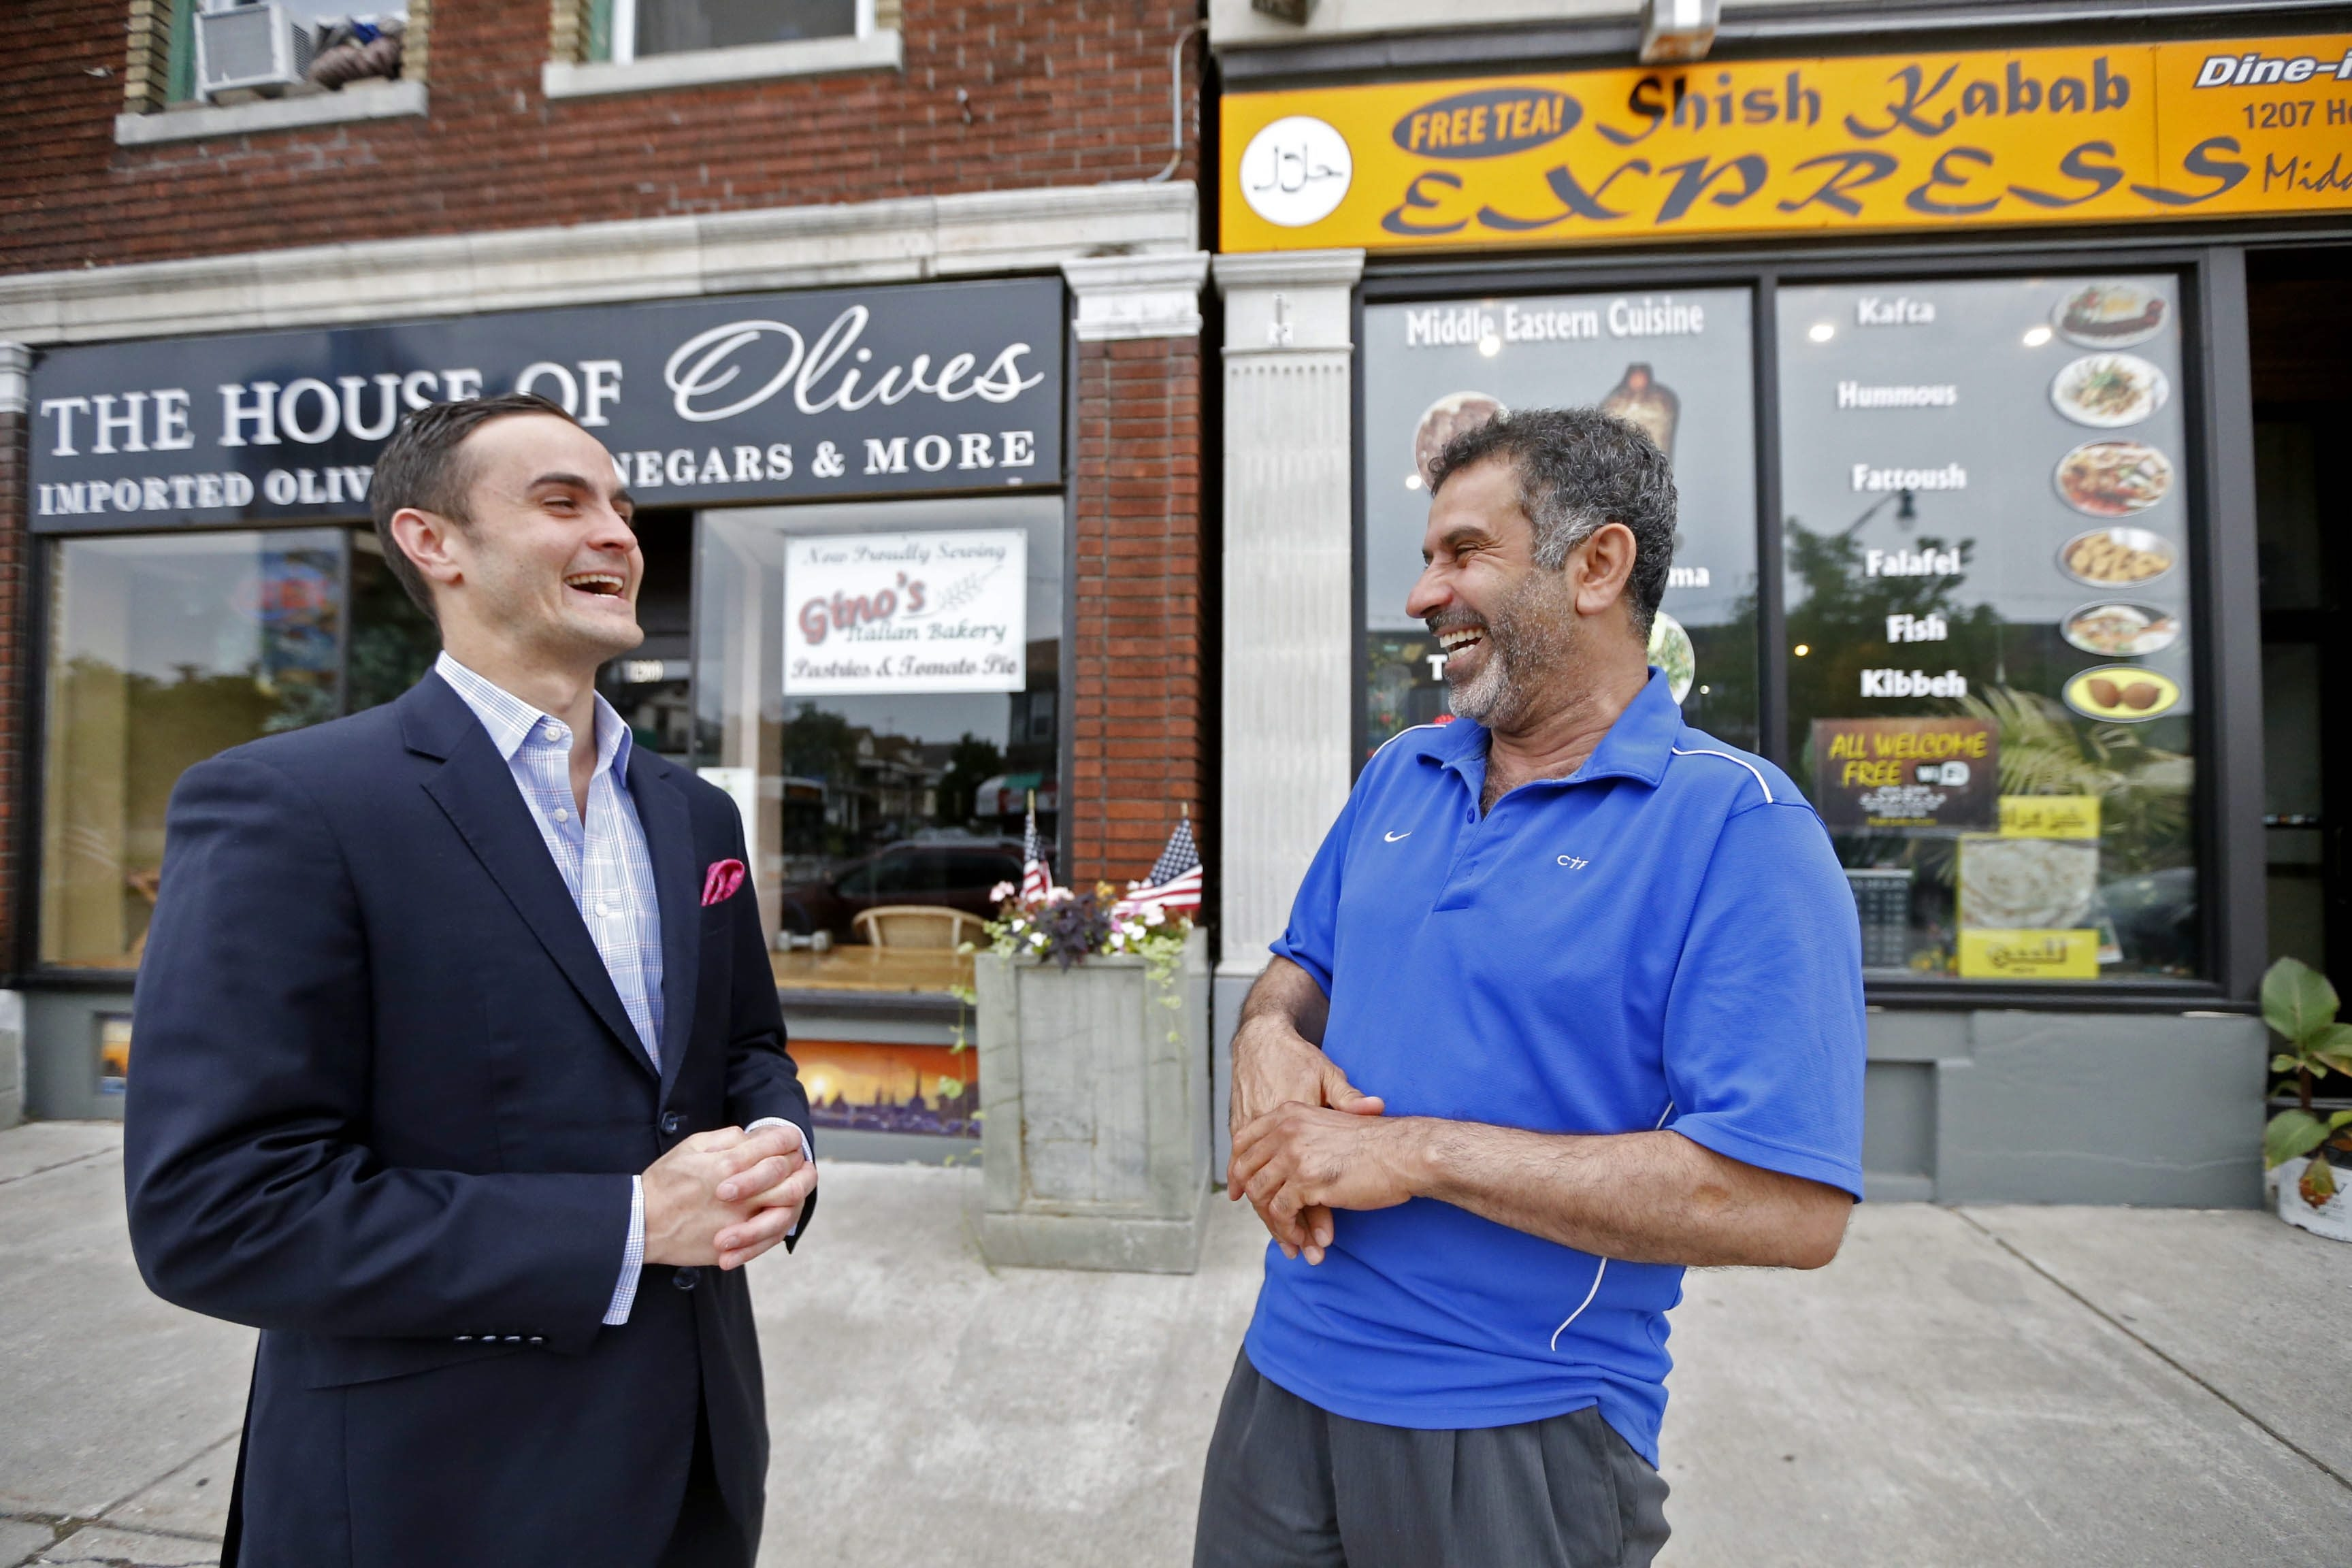 Tommy Lombardo Jr., left, of Ristorante Lombardo, and Adnan Abdulsaid, co-founder of Shish Kabab Express, share a laugh on the sidewalk of Hertel Avenue's Italian District.